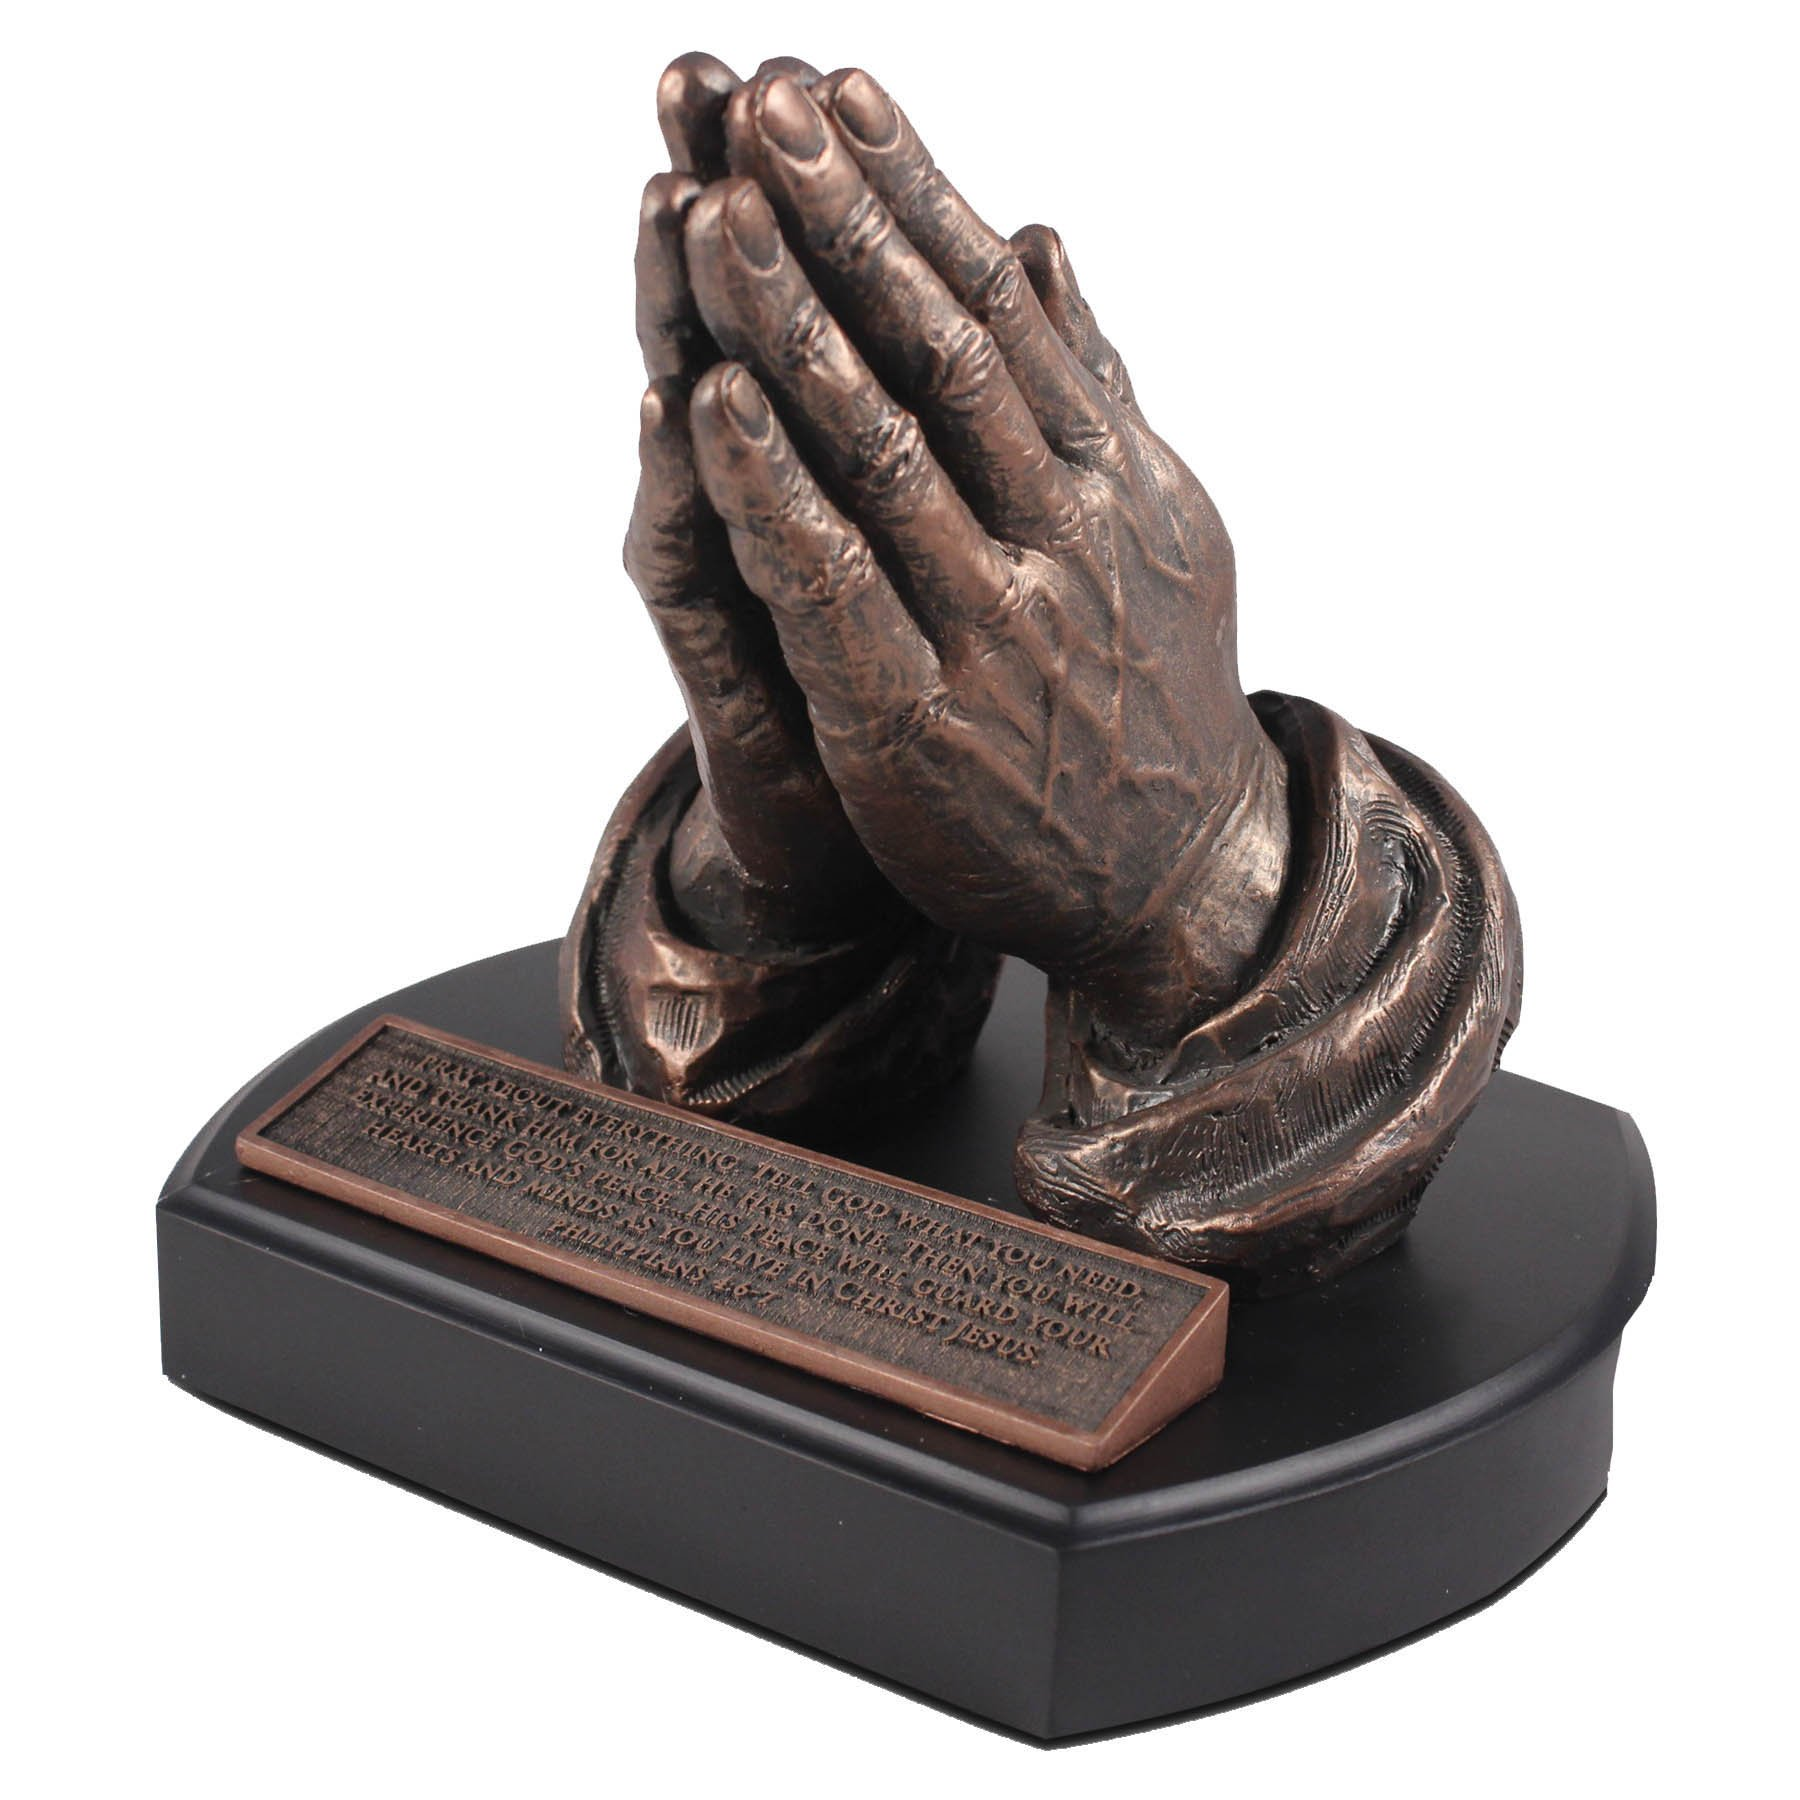 Lighthouse Christian Products Moments of Faith Praying Hands Sculpture, 5 1/2'' by Lighthouse Christian Products